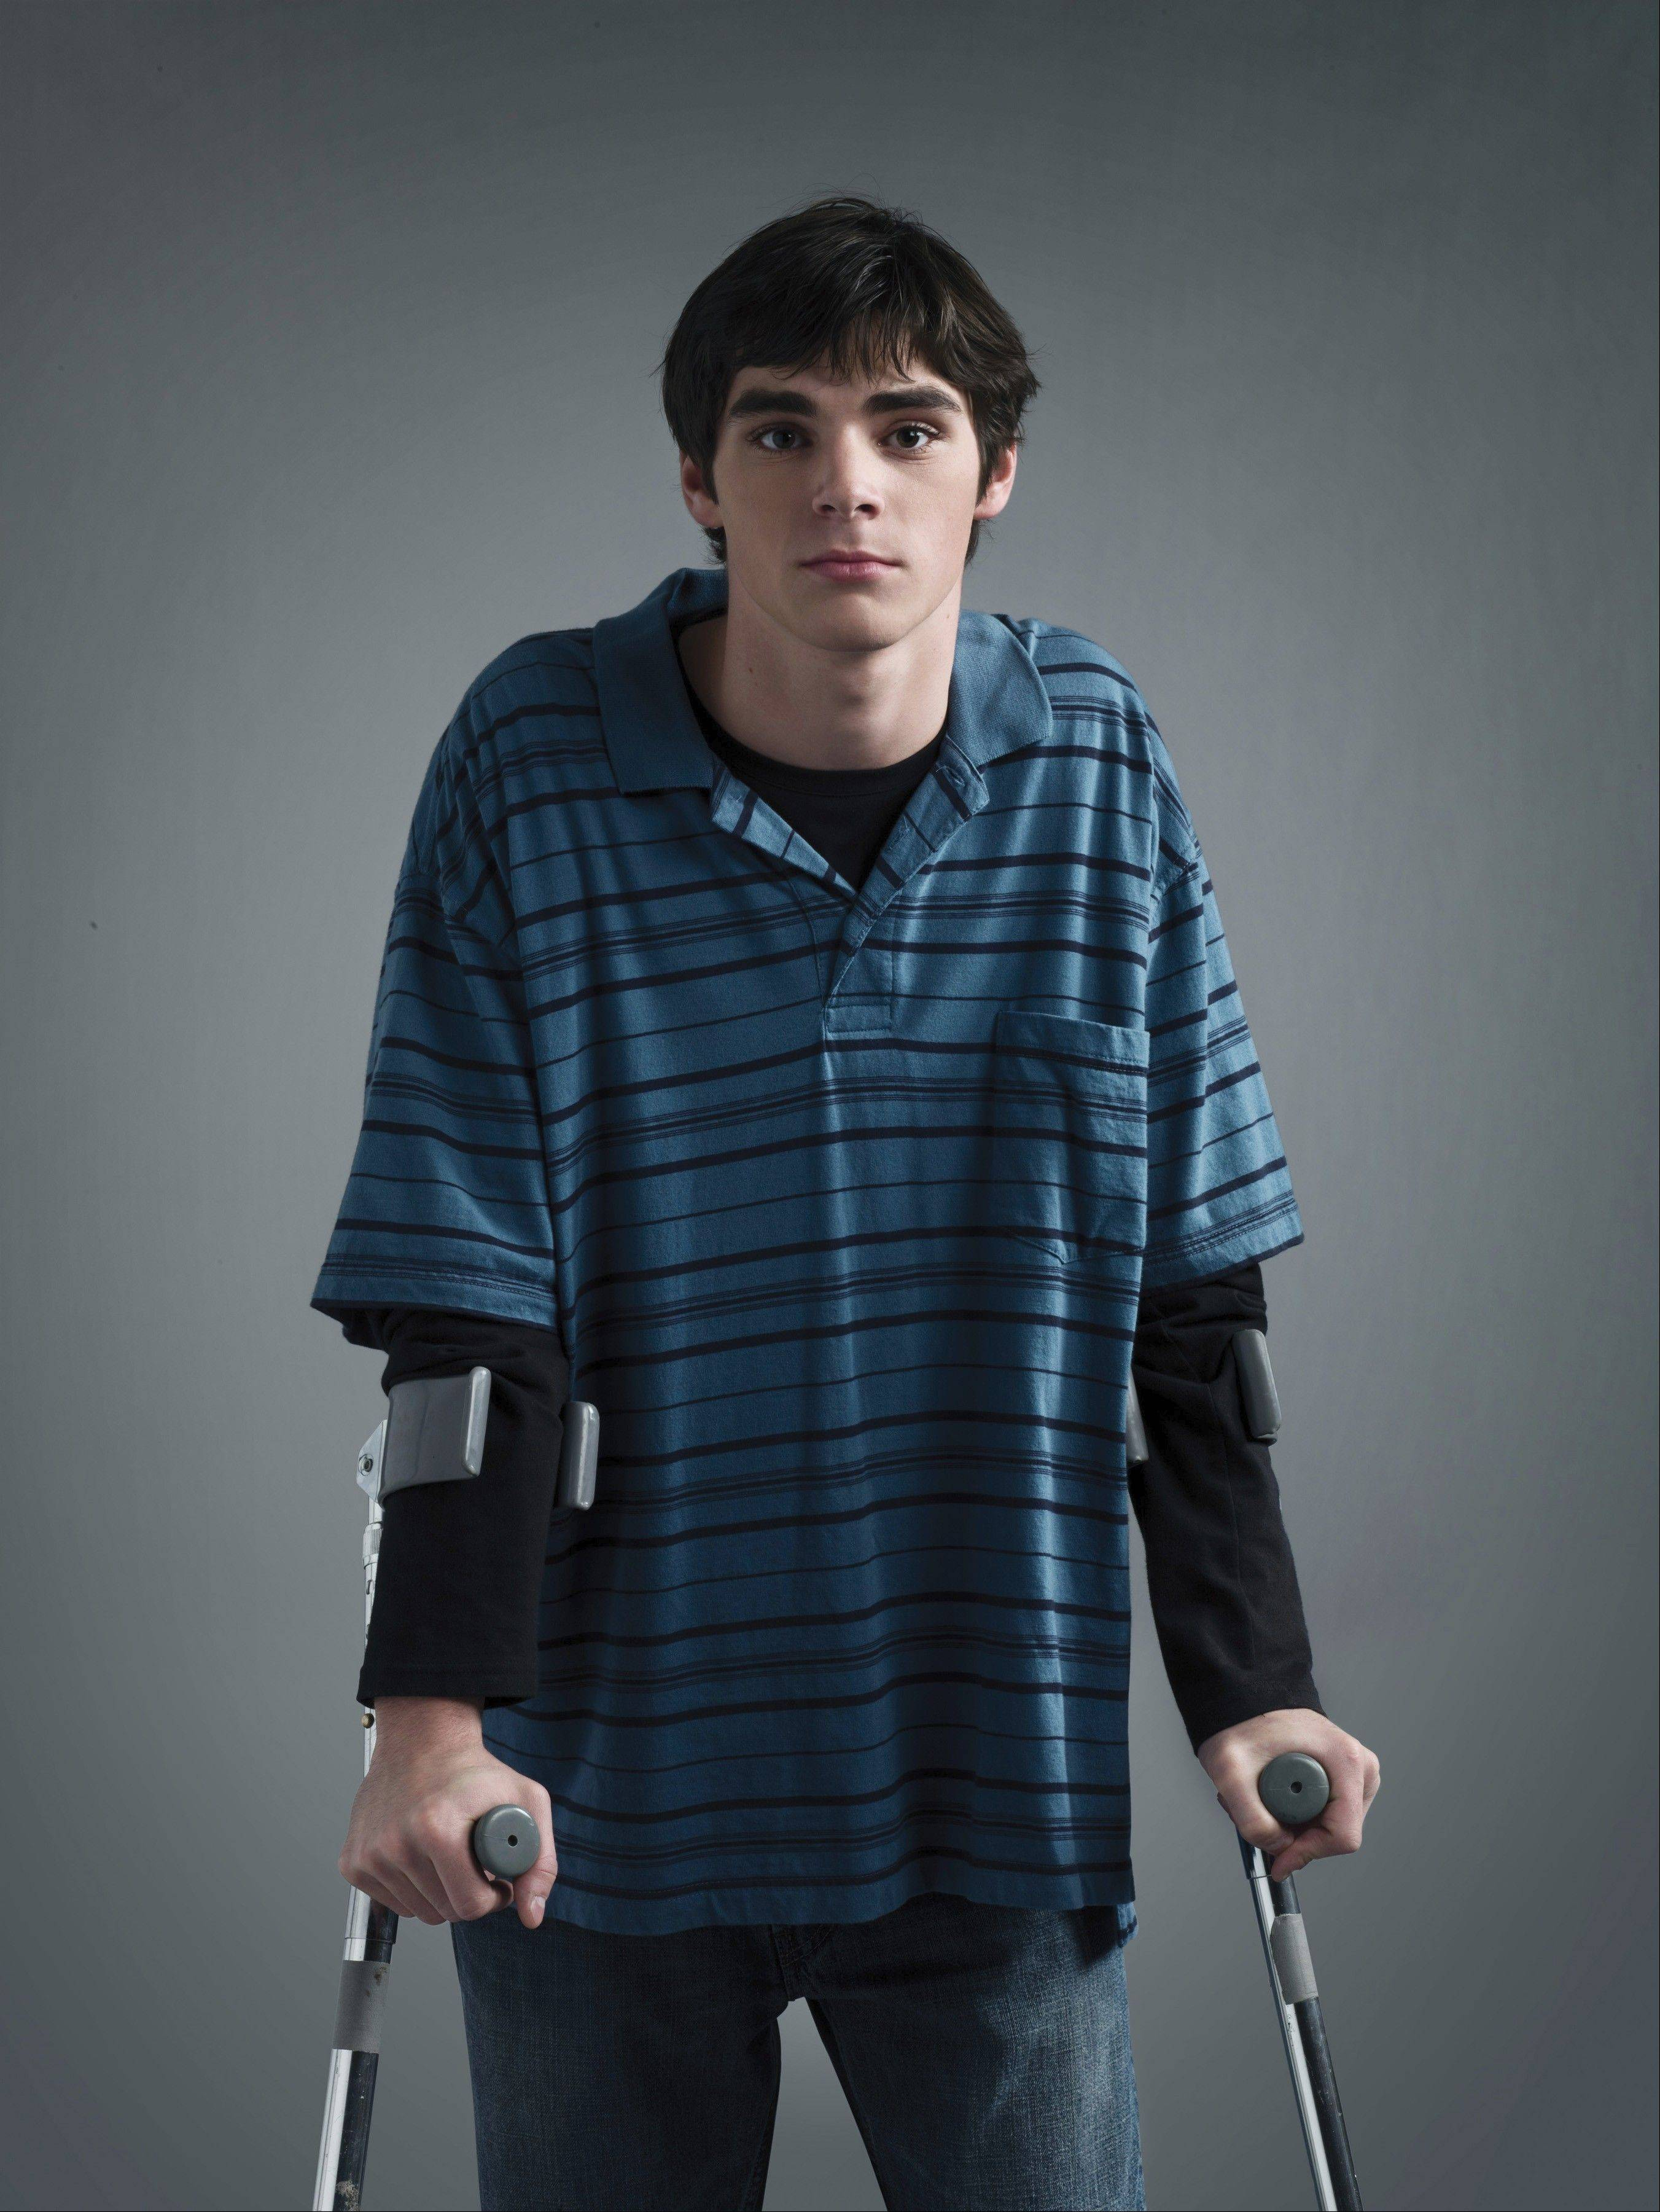 """Breaking Bad"" star R.J. Mitte will appear Tuesday, Oct. 8 at Harper College in Palatine. Mitte will discuss overcoming adversity in his life and take questions from the audience."